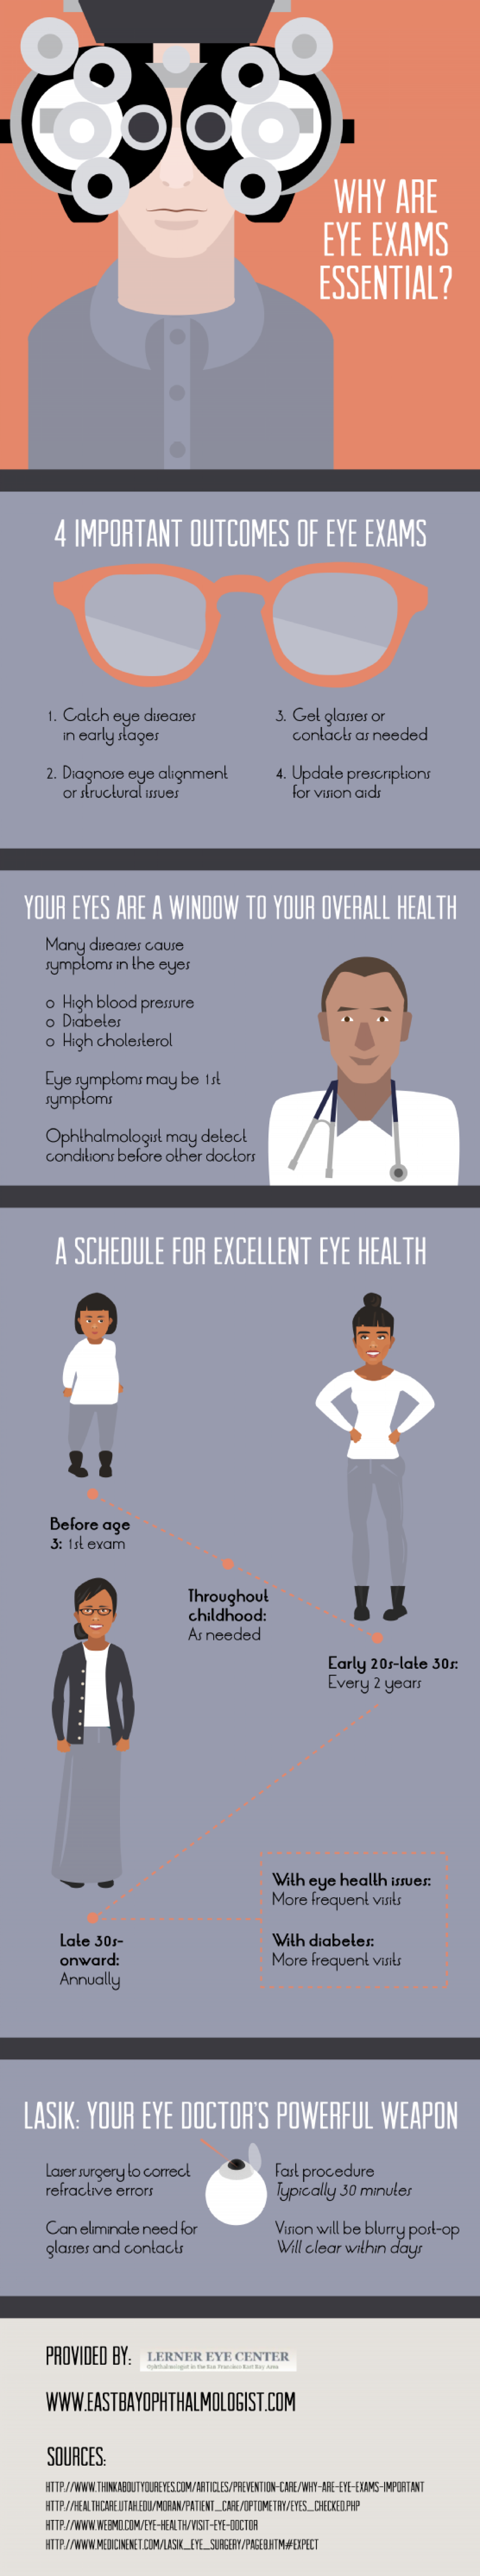 Why Are Eye Exams Essential? Infographic